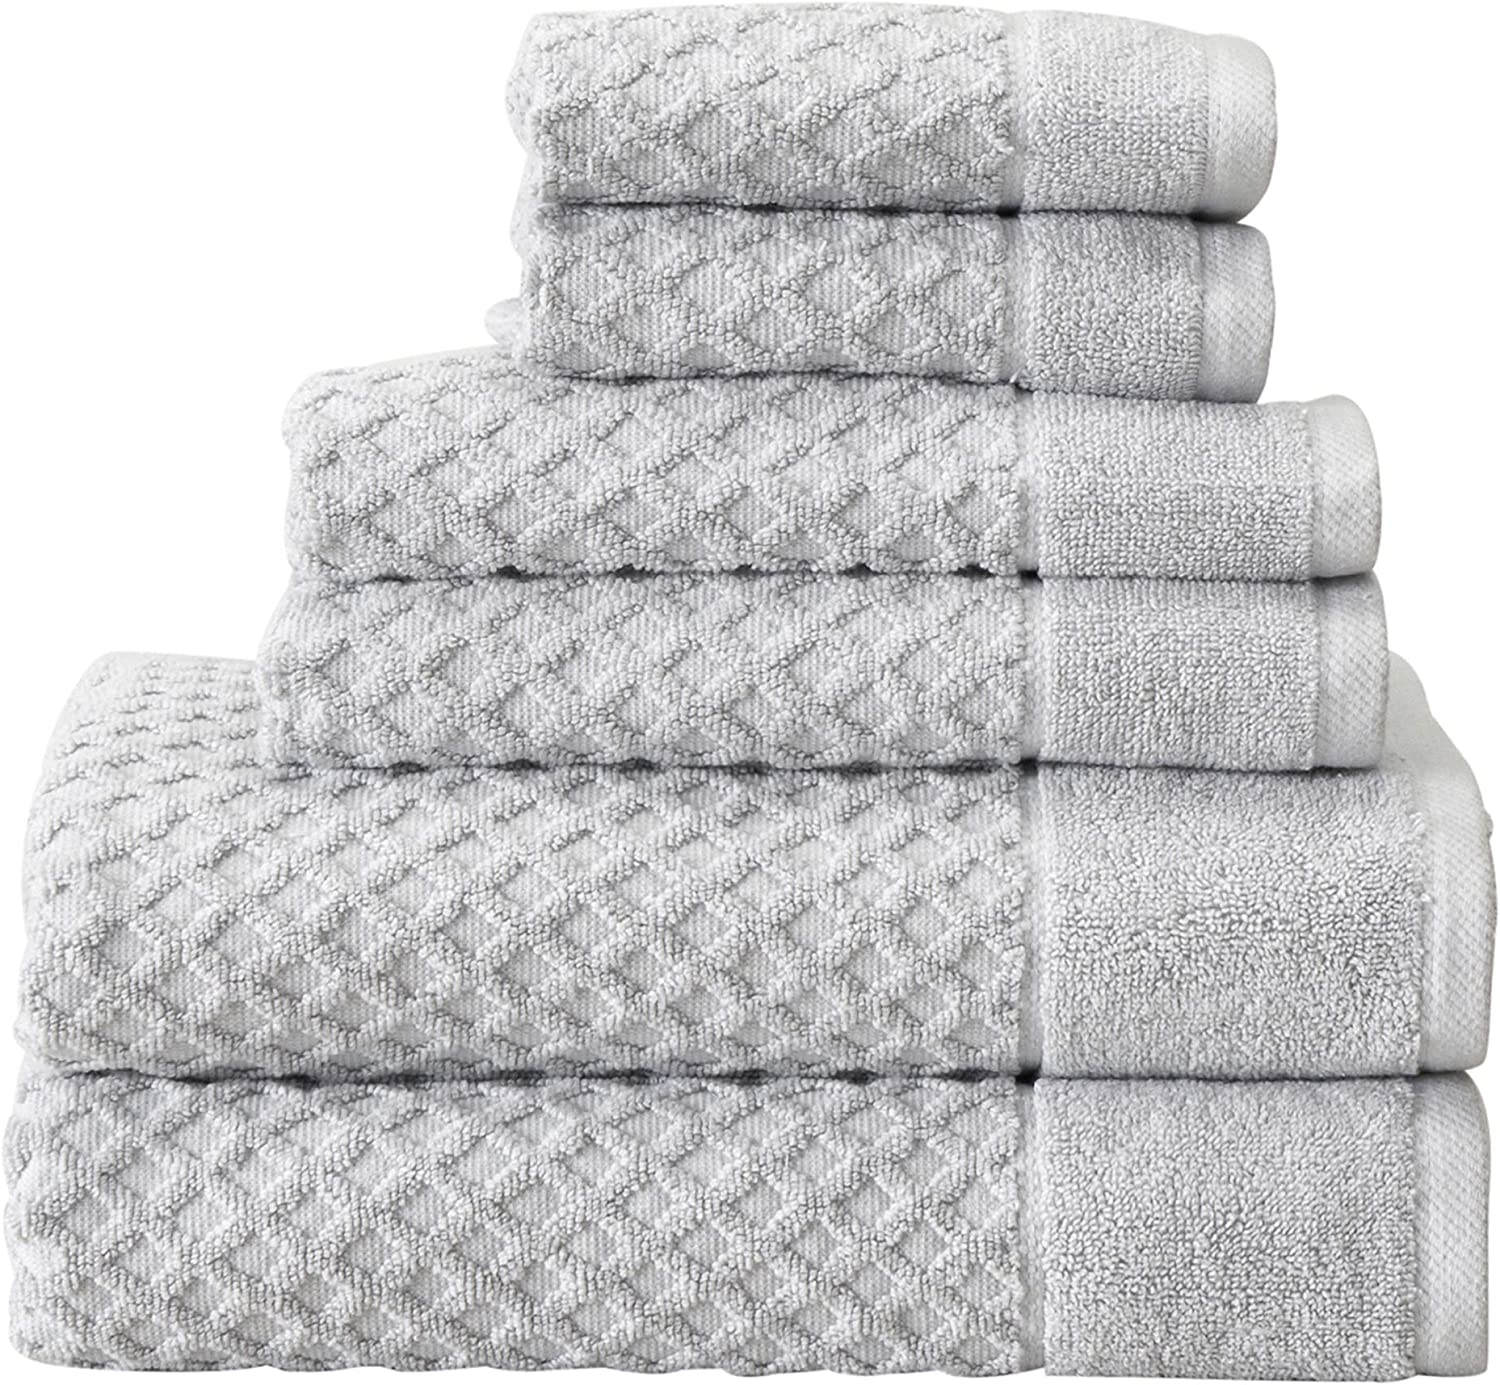 100% Cotton Bath Towels, Luxury 6 Piece Set - 2 Bath Towels, 2 Hand Towels and 2 Washcloths. Absorbent Quick-Dry Textured Towels. Grayson Collection (6 Piece Set, Light Grey): Kitchen & Dining